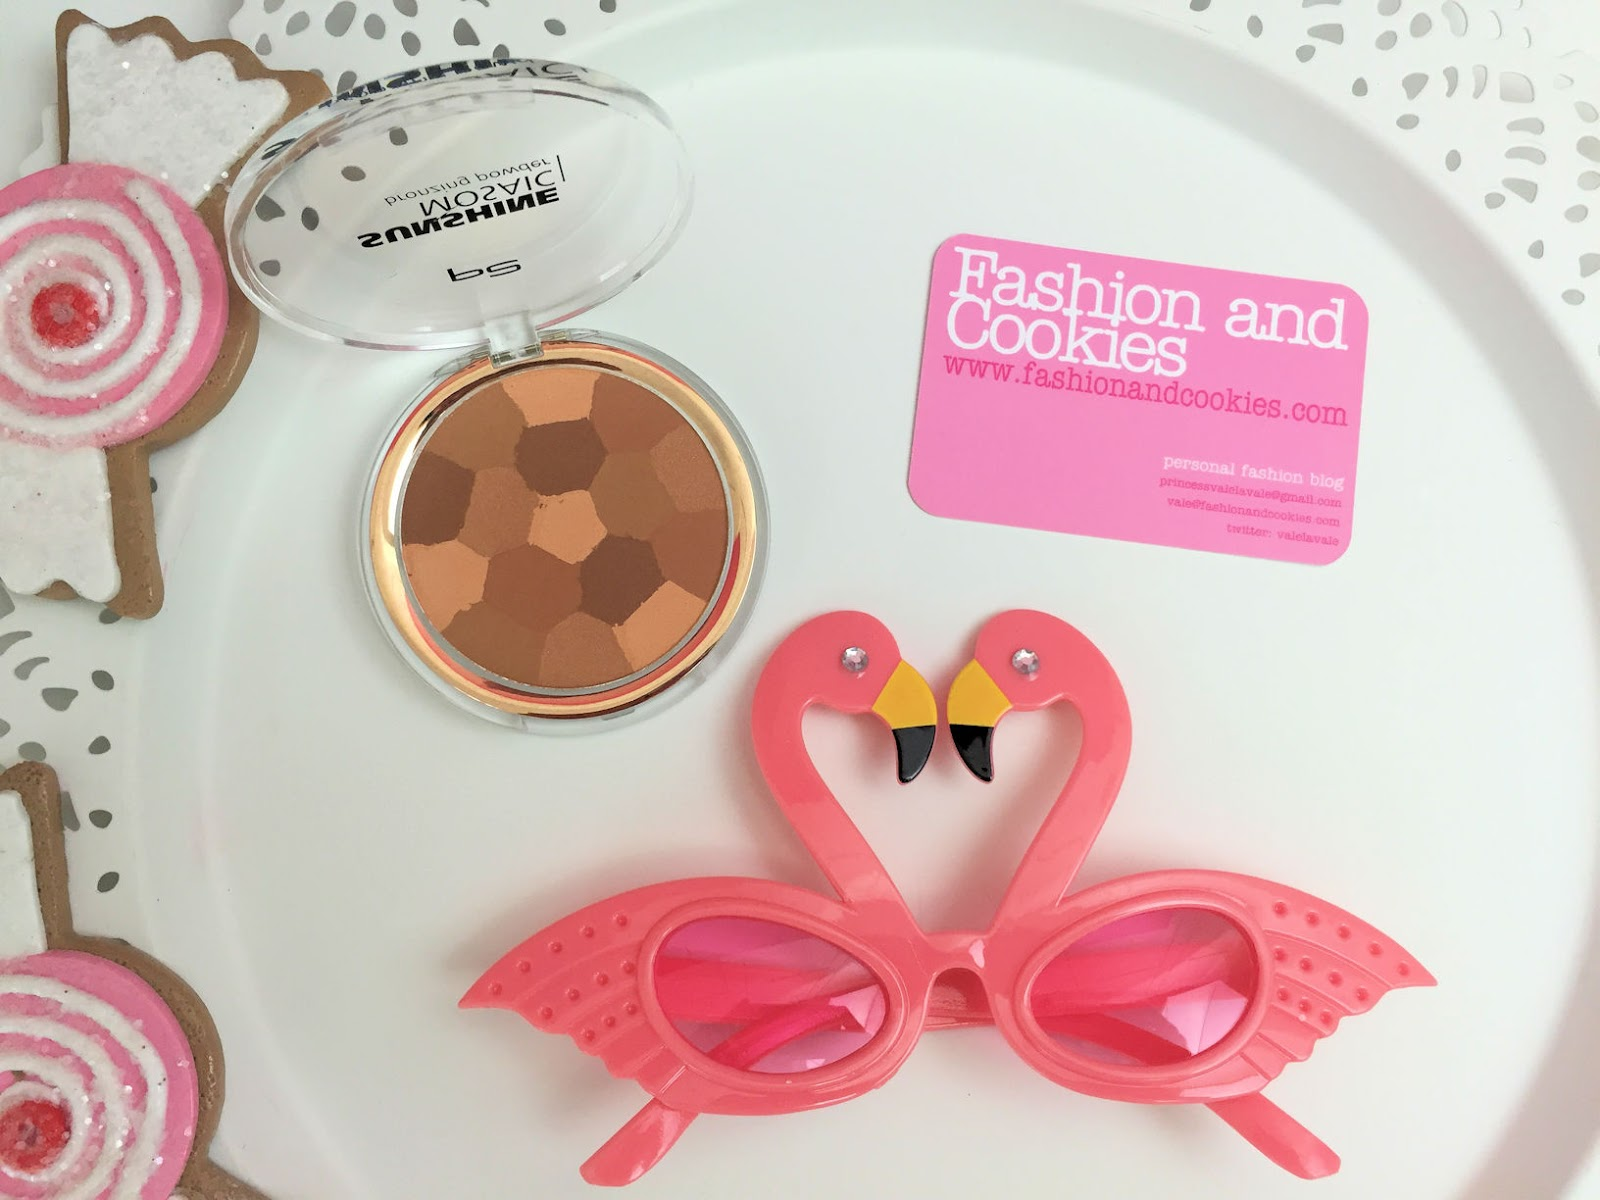 p2 Cosmetics makeup low cost review bronzer mosaic su Fashion and Cookies beauty blog, beauty blogger